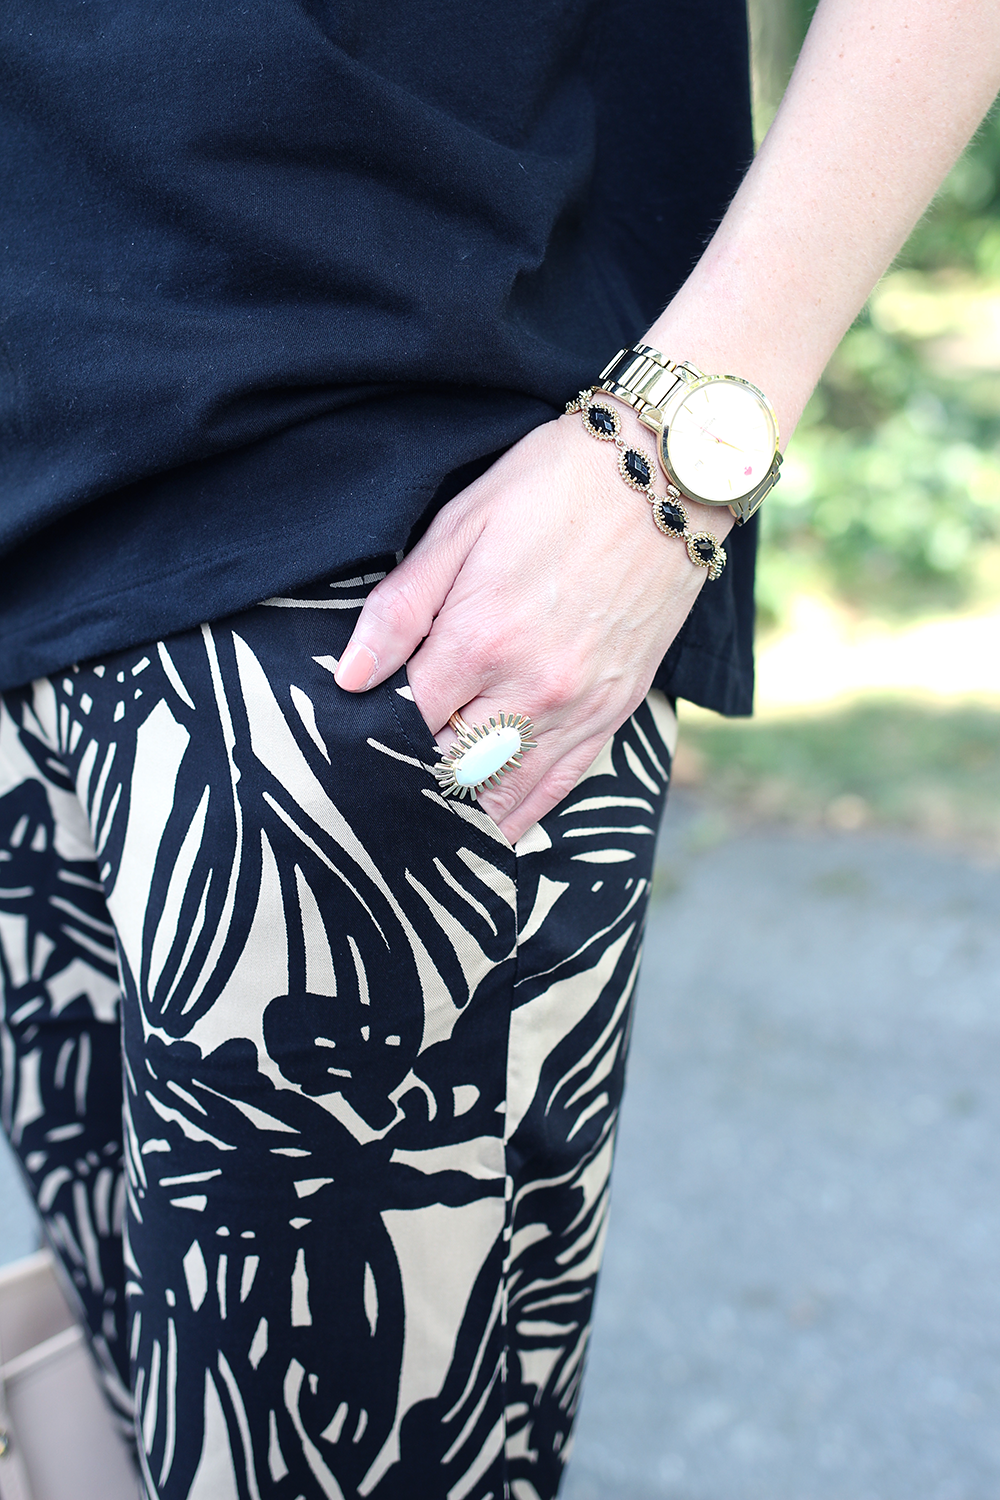 Kendra Scott Ring, Patterned Jogger Pants, Fall Outfit Idea